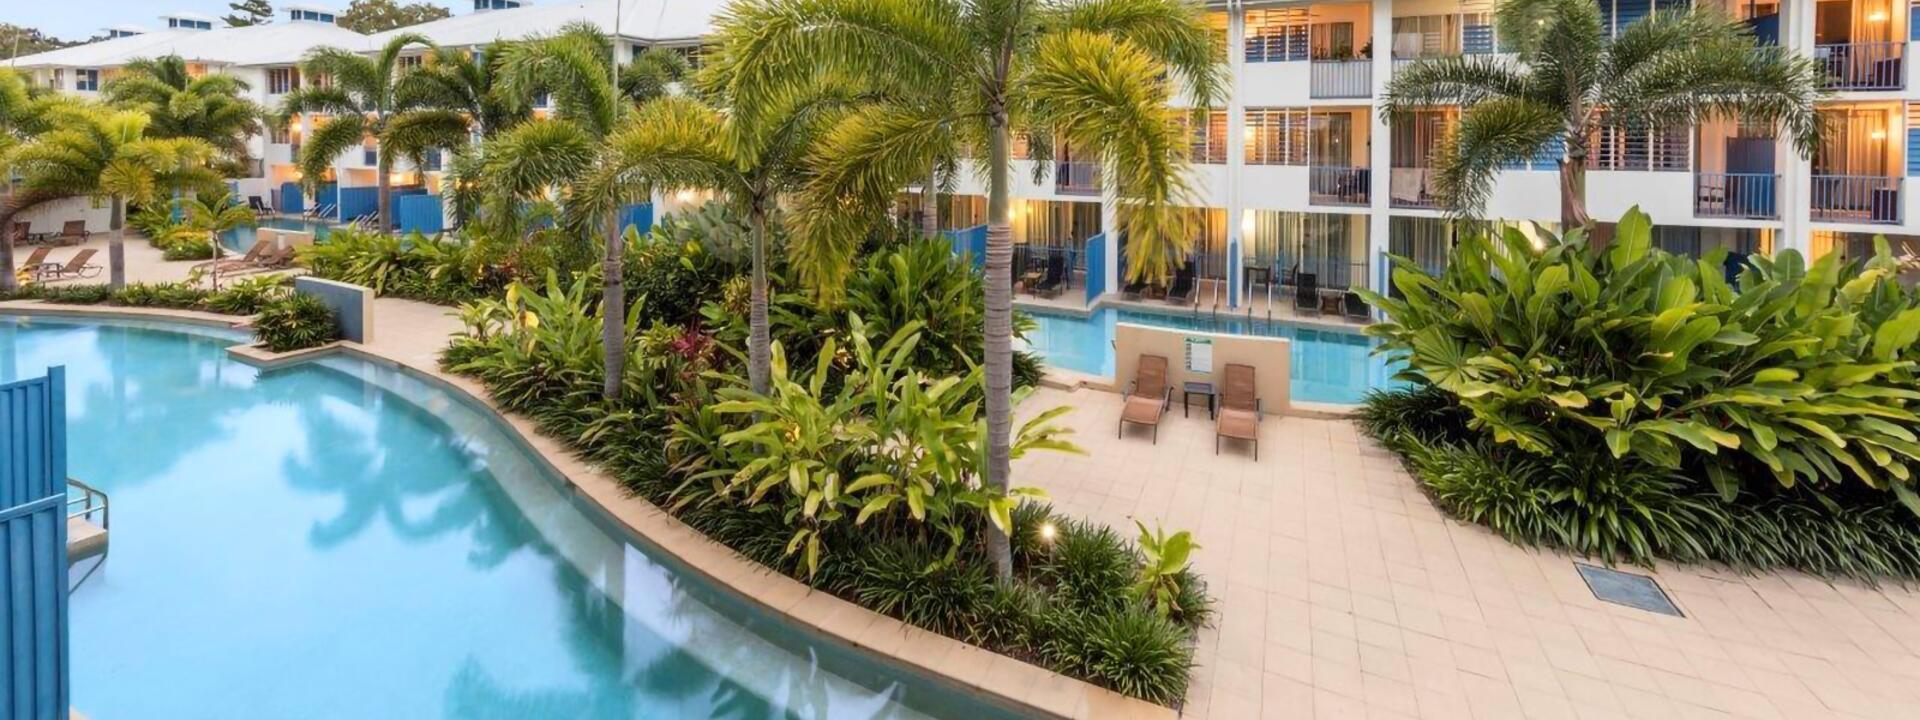 Swimming Pools by Lagoon Rooms at Silkari Hotel Port Douglas